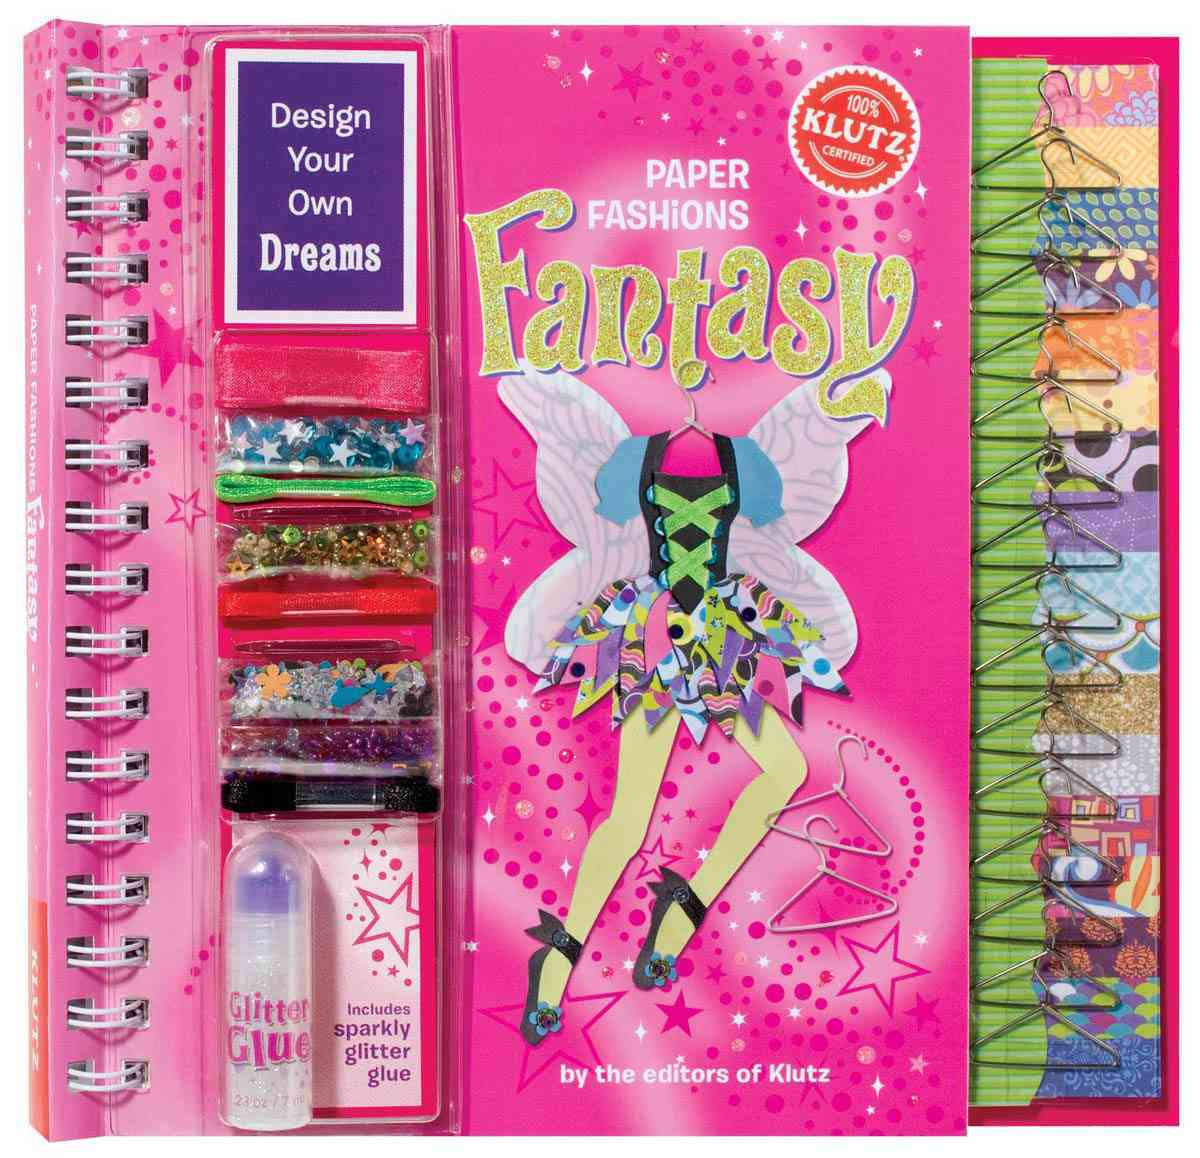 Paper Fashions Fantasy (Hardcover)